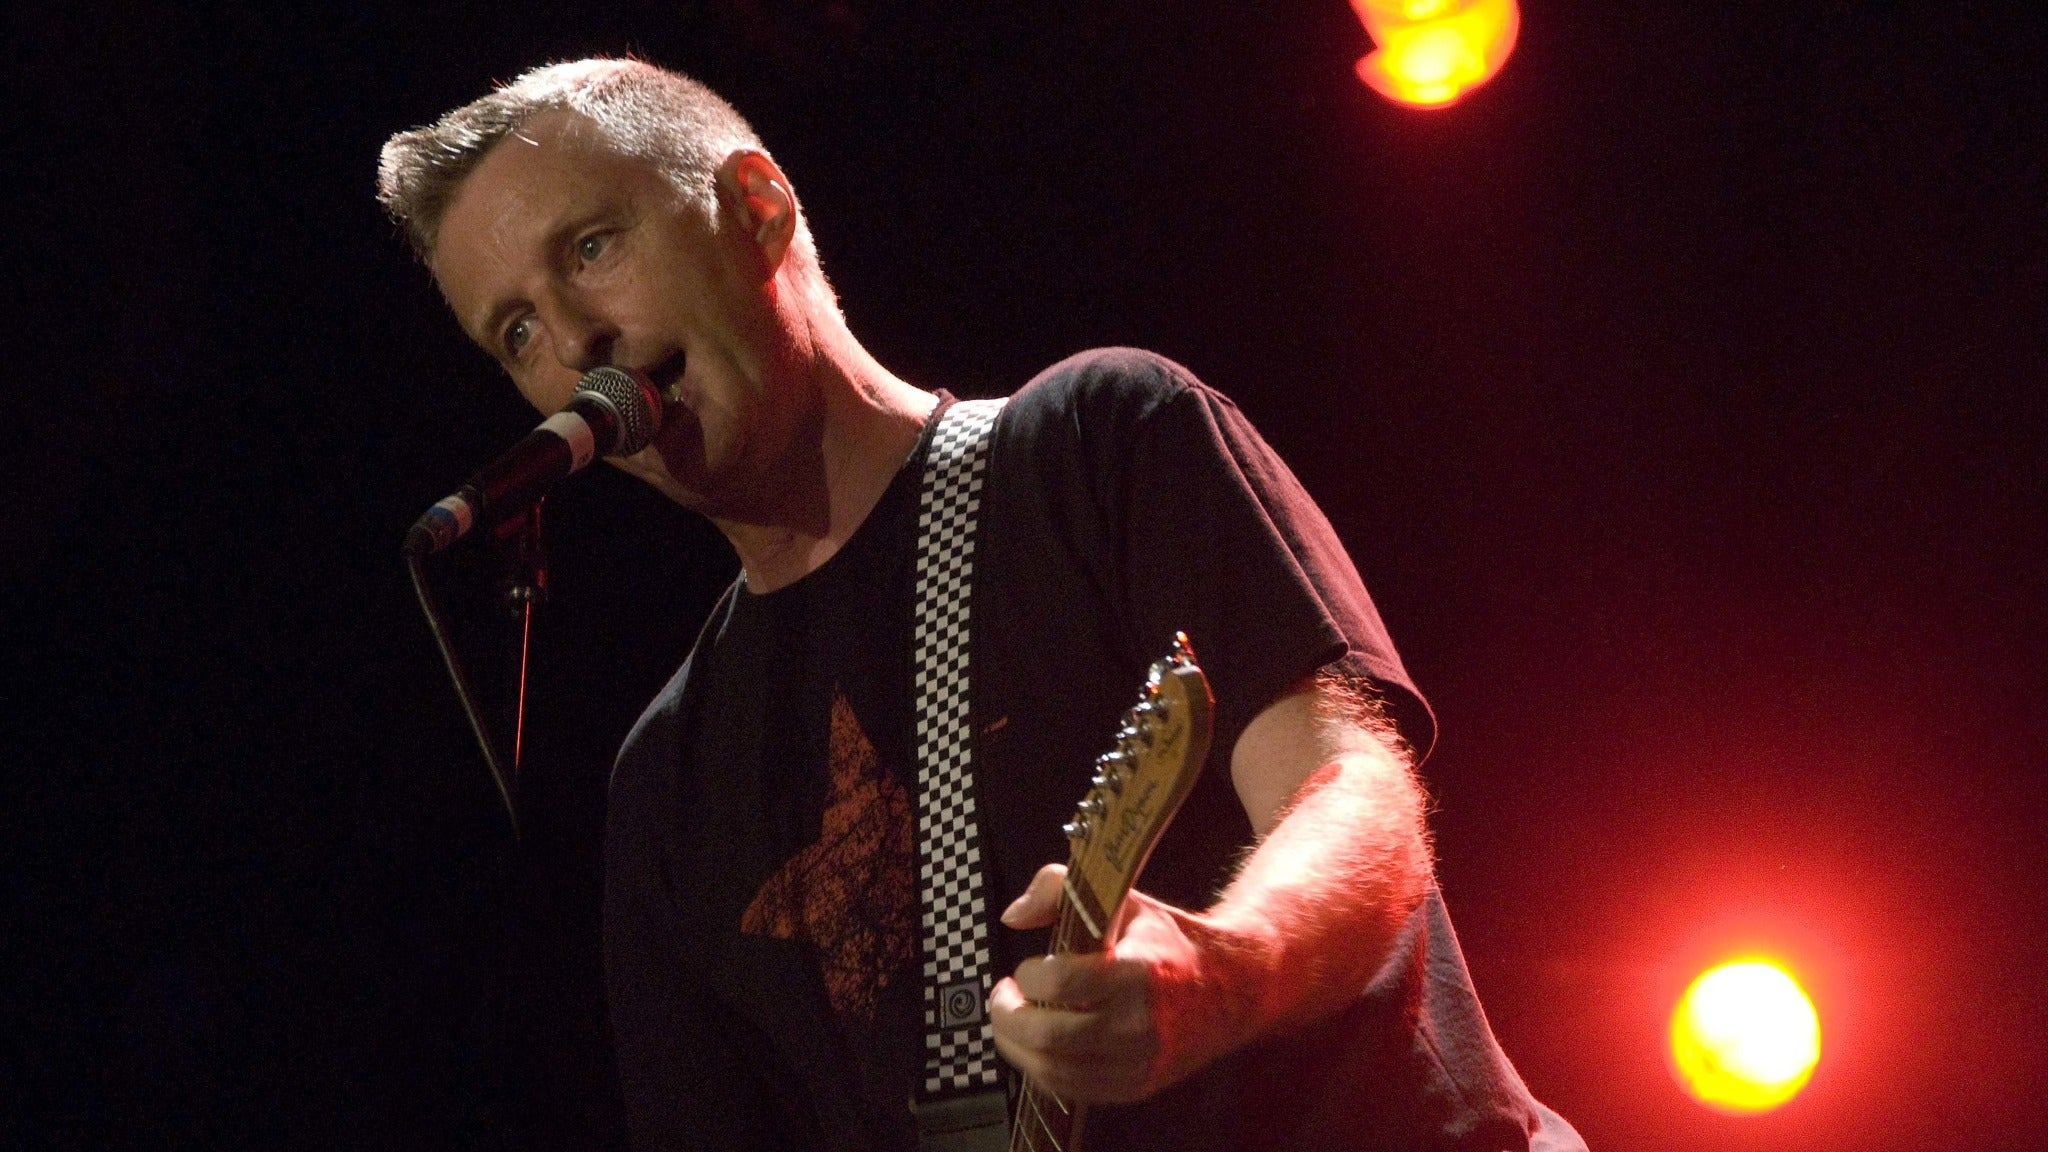 Billy Bragg at Fine Line Music Cafe - Minneapolis, MN 55401